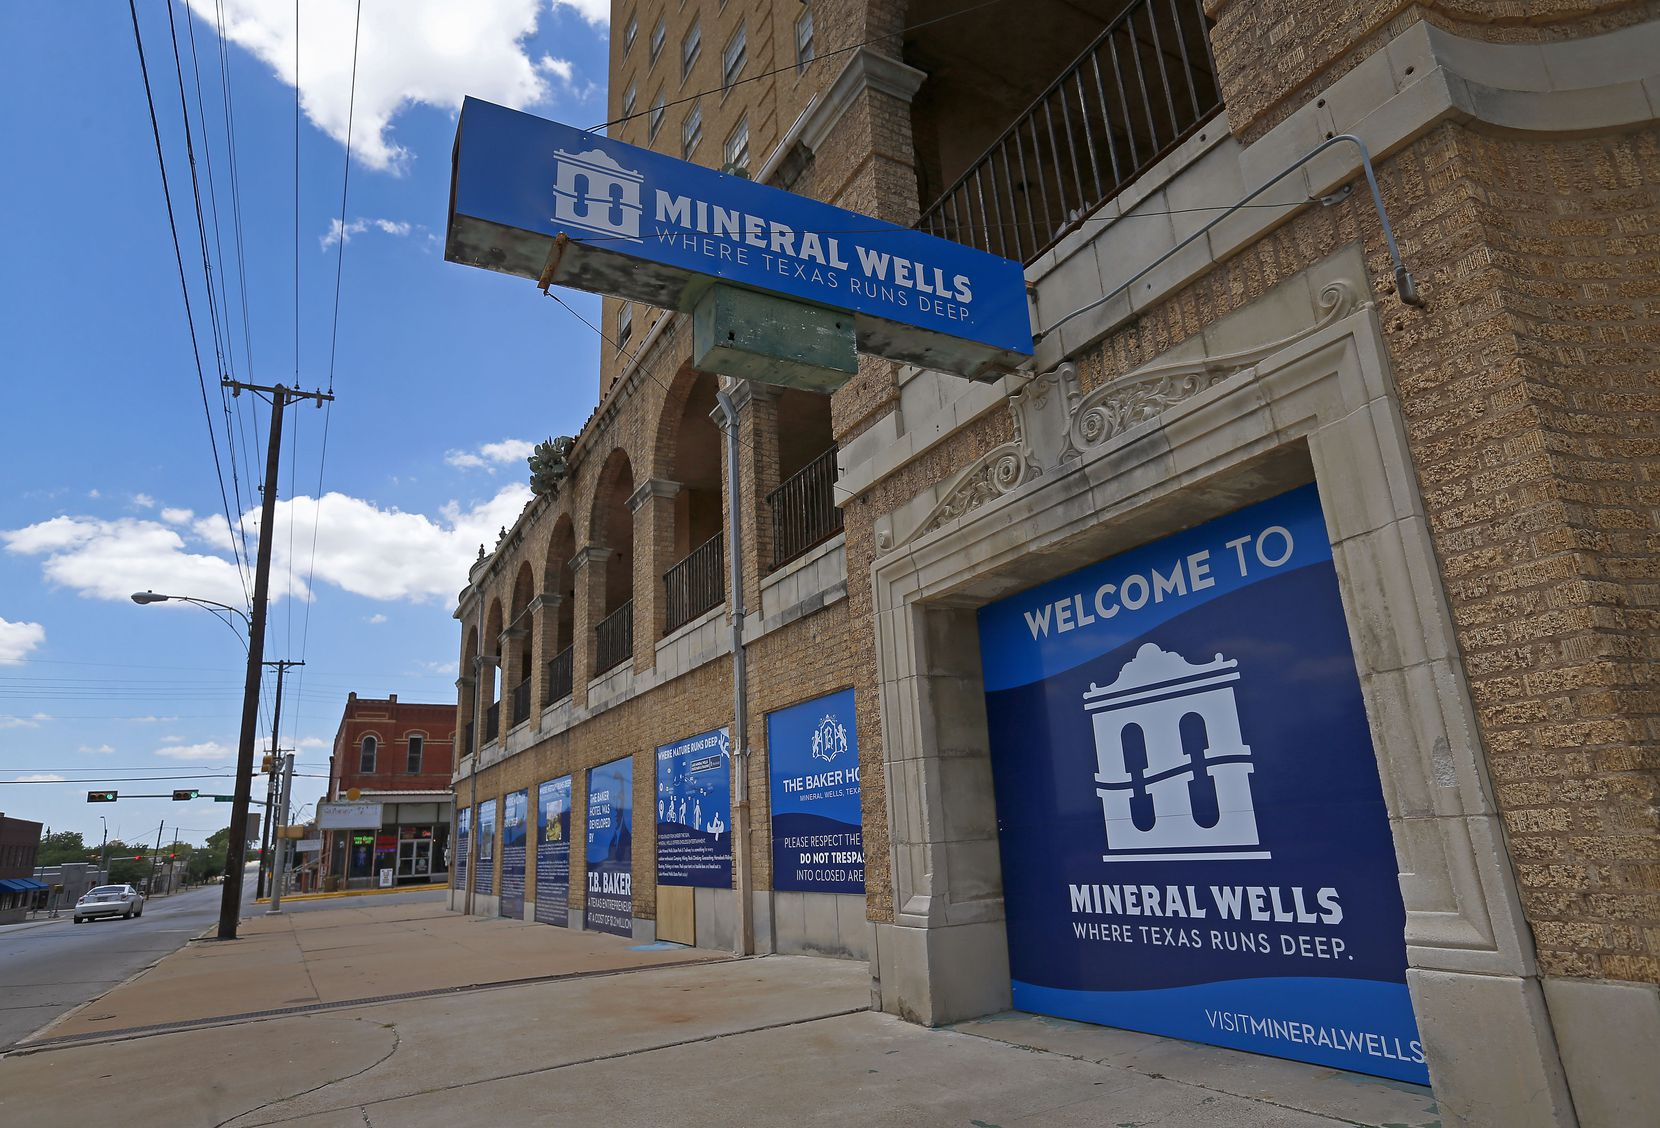 There's a welcome sign for the city on the historic Baker Hotel in Mineral Wells.